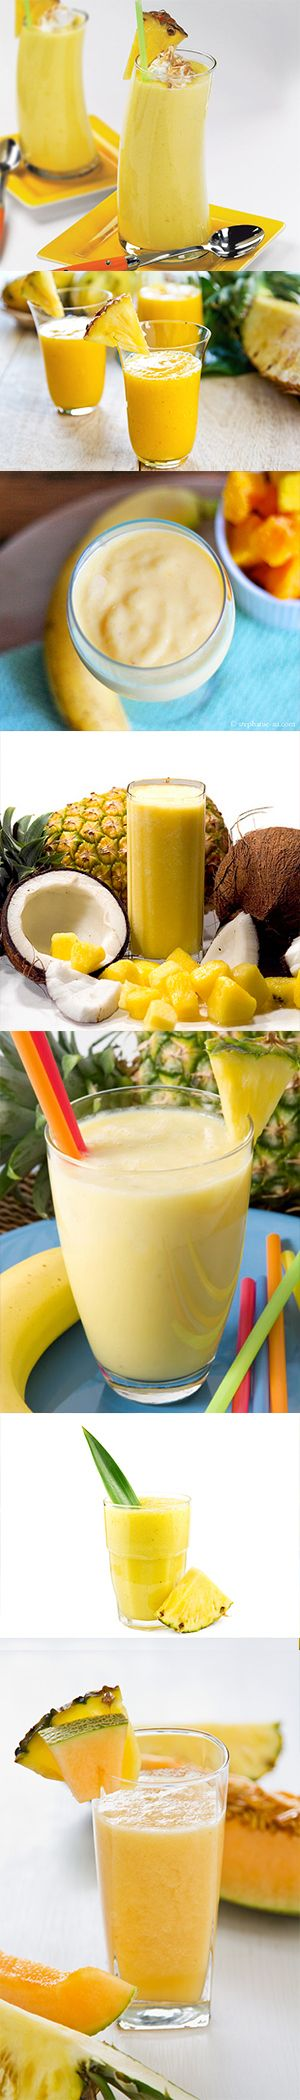 7 Healthy Pineapple Smoothie Recipes